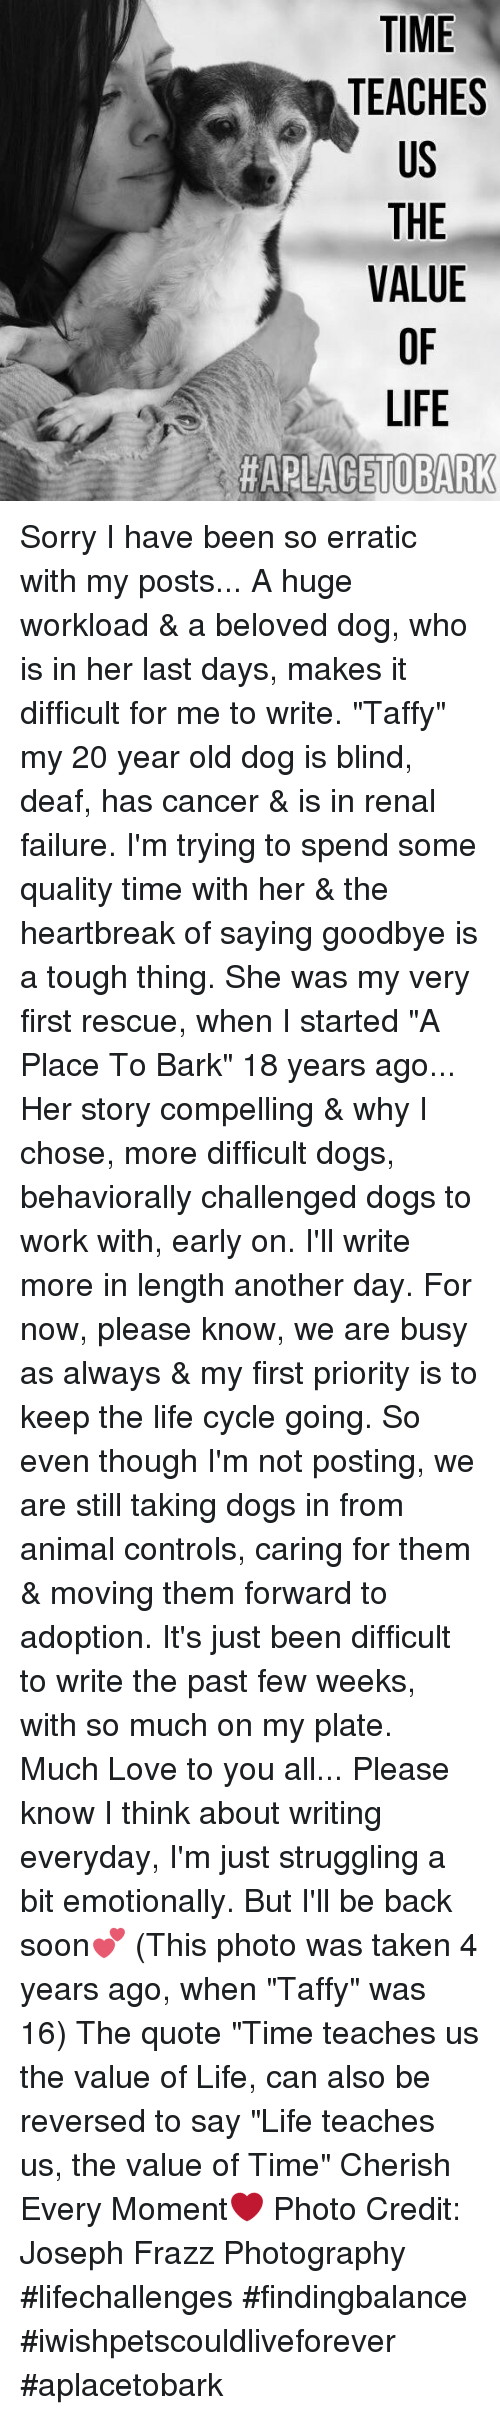 """Memes, 🤖, and Beloved: TIME  TEACHES  US  THE  VALUE  LIFE  HAPLACETOBARK Sorry I have been so erratic with my posts... A huge workload & a beloved dog, who is in her last days, makes it difficult for me to write. """"Taffy"""" my 20 year old dog is blind, deaf, has cancer & is in renal failure. I'm trying to spend some quality time with her & the heartbreak of saying goodbye is a tough thing. She was my very first rescue, when I started """"A Place To Bark"""" 18 years ago... Her story compelling & why I chose, more difficult dogs, behaviorally challenged dogs to work with, early on. I'll write more in length another day. For now, please know, we are busy as always & my first priority is to keep the life cycle going.  So even though I'm not posting, we are still taking dogs in from animal controls, caring for them & moving them forward to adoption. It's just been difficult to write the past few weeks, with so much on my plate.  Much Love to you all... Please know I think about writing everyday, I'm just struggling a bit emotionally. But I'll be back soon💕  (This photo was taken 4 years ago, when """"Taffy"""" was 16) The quote """"Time teaches us the value of Life, can also be reversed to say """"Life teaches us, the value of Time"""" Cherish Every Moment❤️ Photo Credit: Joseph Frazz Photography  #lifechallenges #findingbalance #iwishpetscouldliveforever  #aplacetobark"""